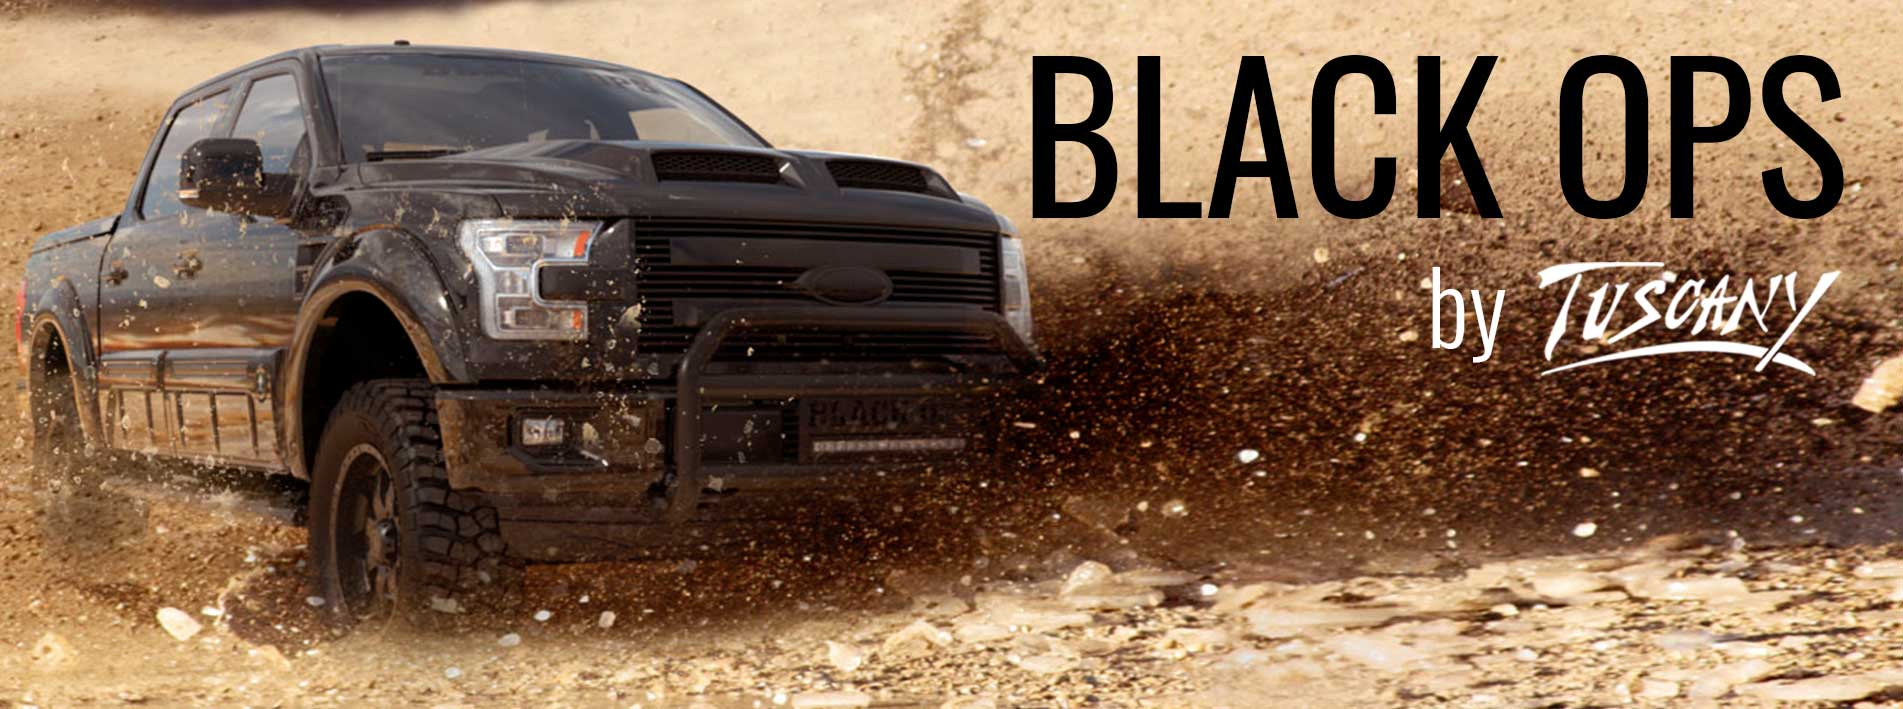 F 150 Black Ops By Tuscany